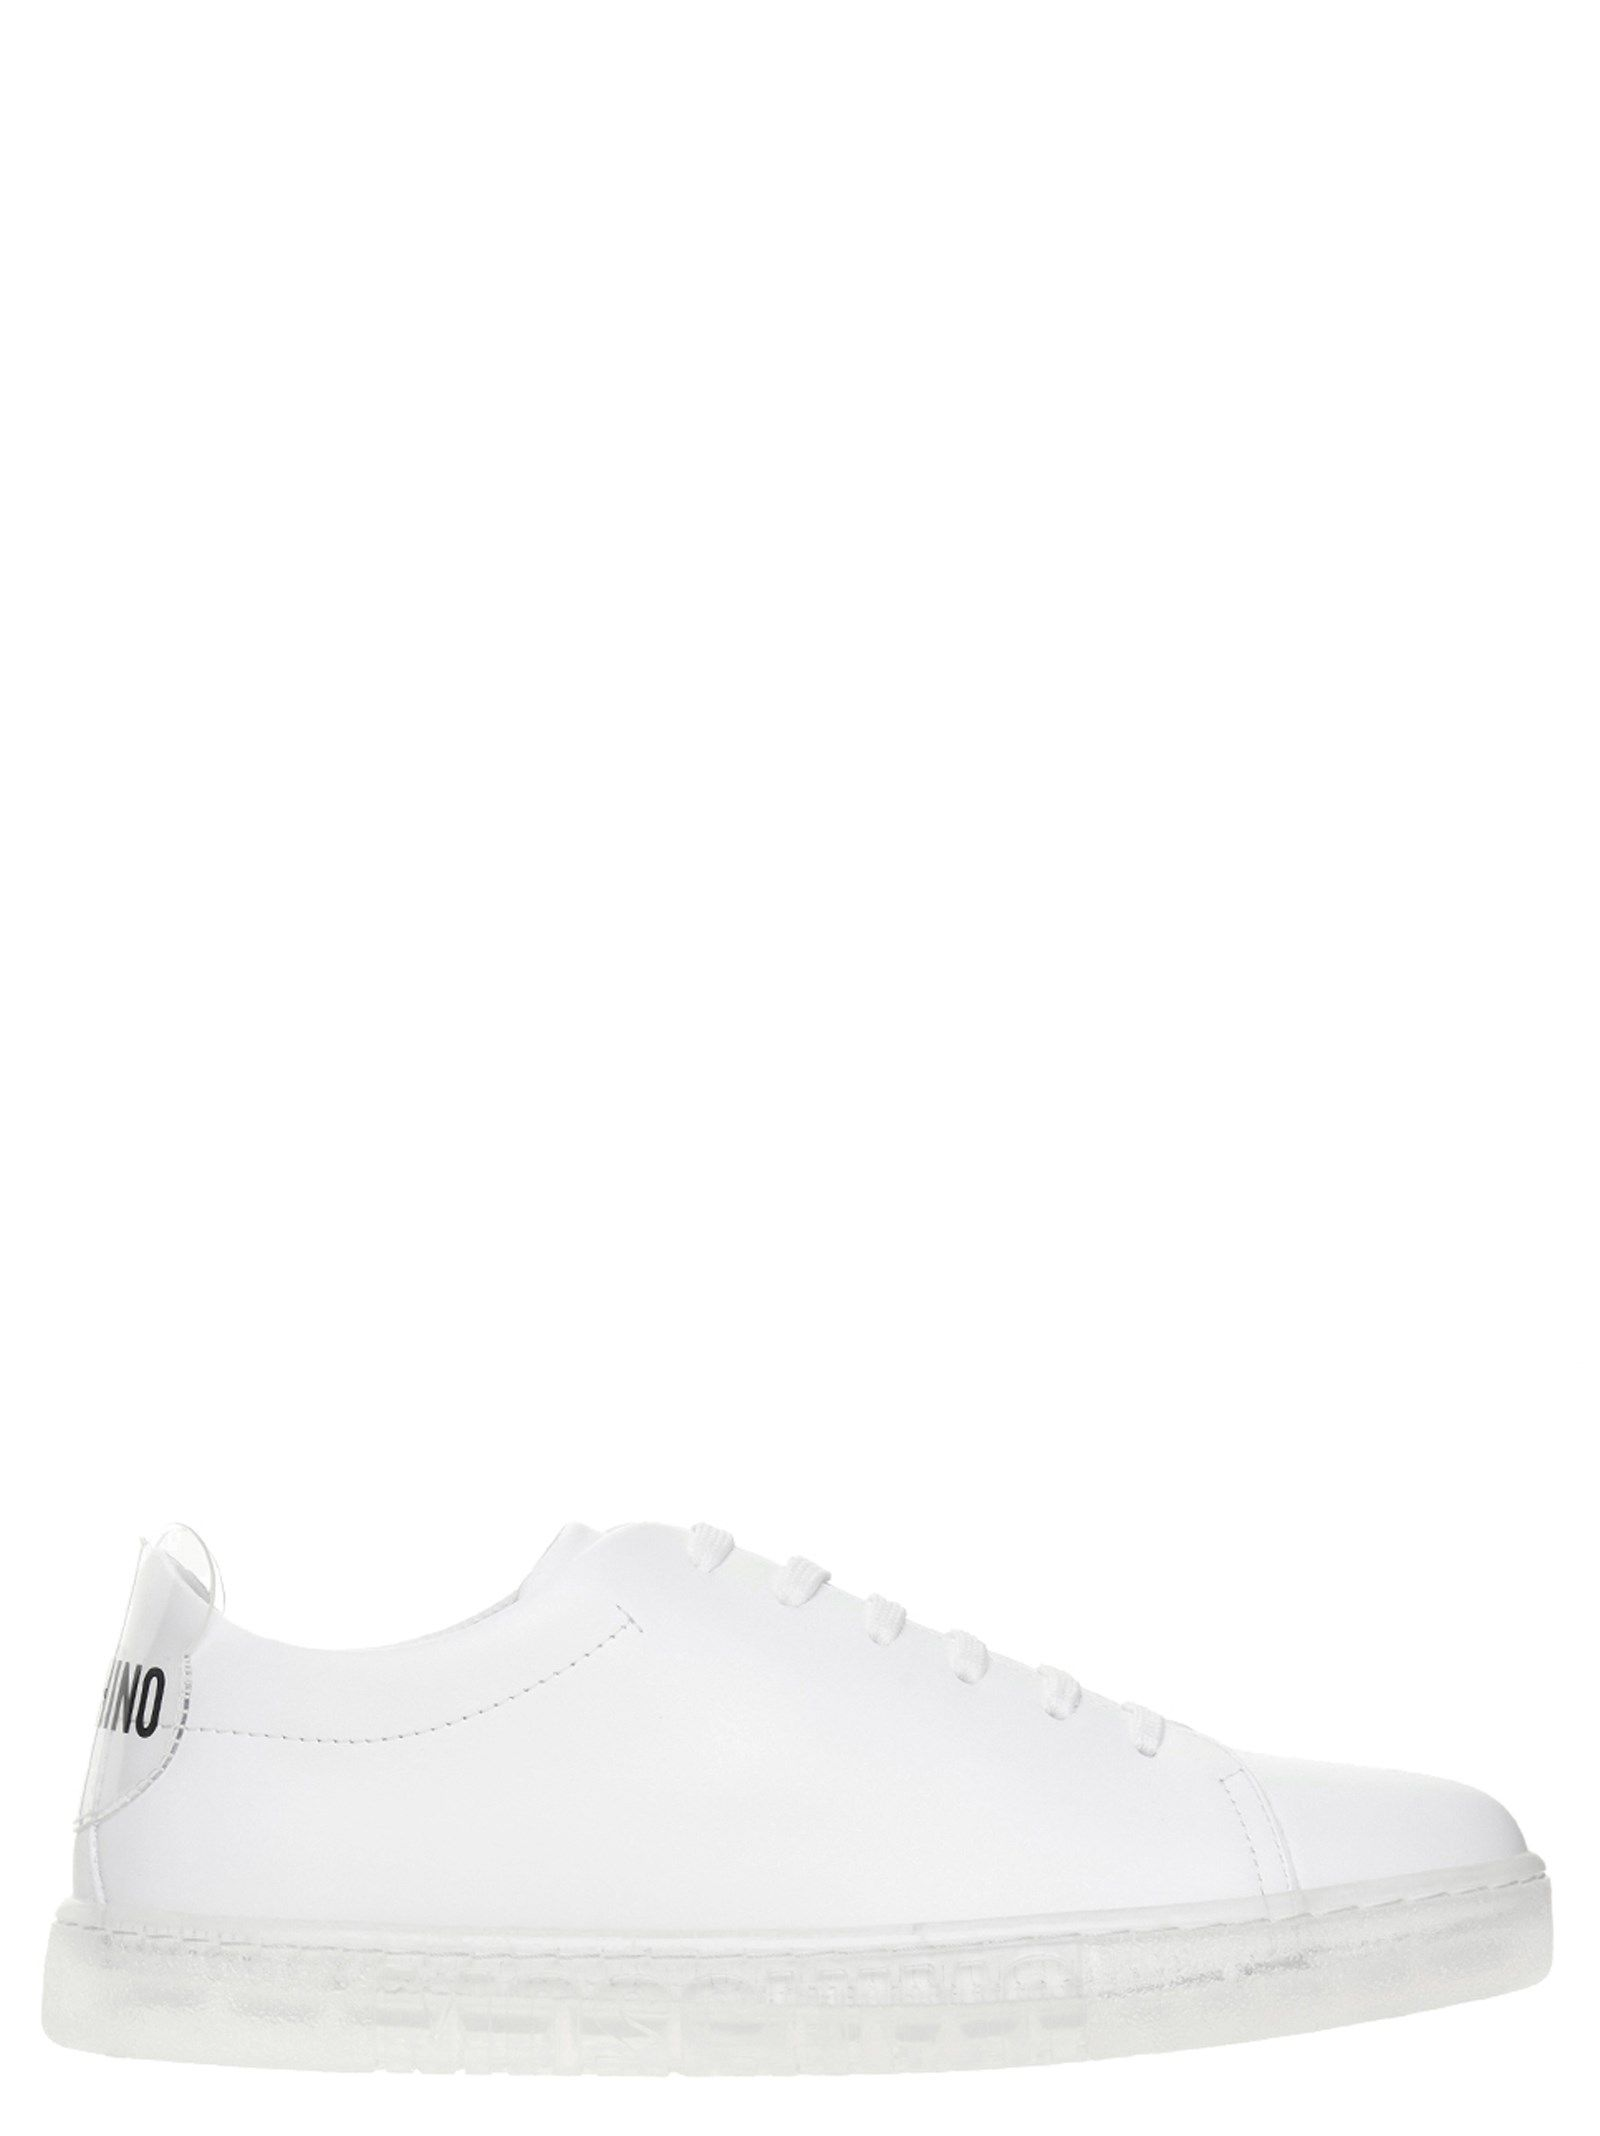 Moschino Low tops MOSCHINO WOMEN'S MA15012G1CMF410A WHITE OTHER MATERIALS SNEAKERS